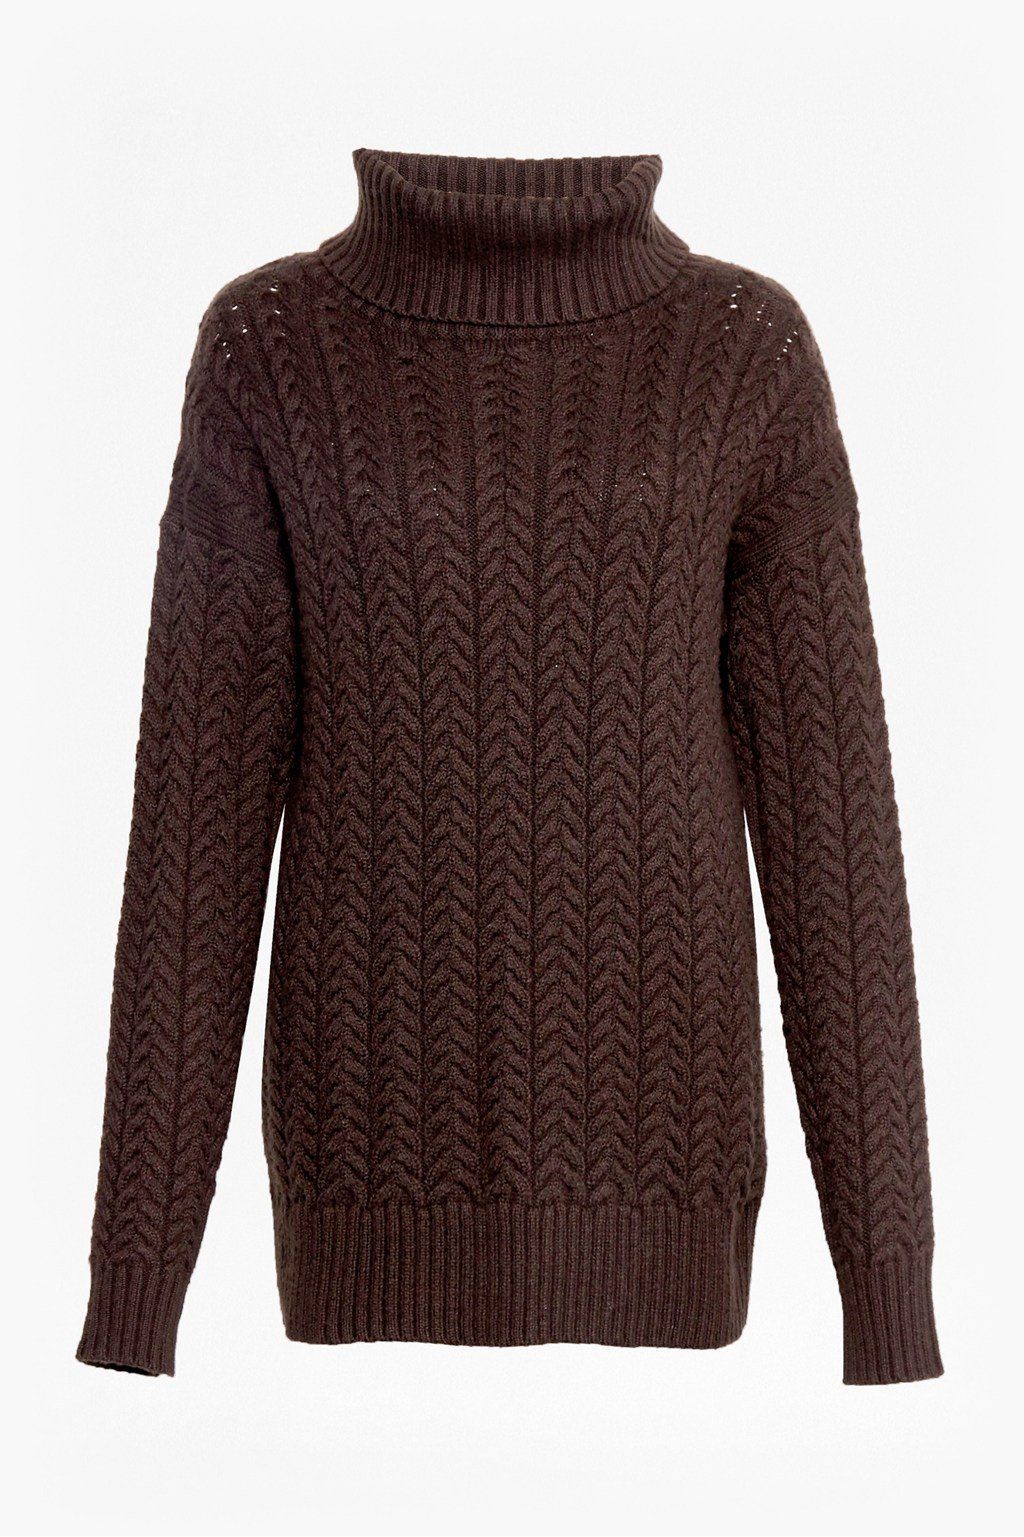 21ac0a22965383 ... Rita Cable Knit Jumper. loading images.